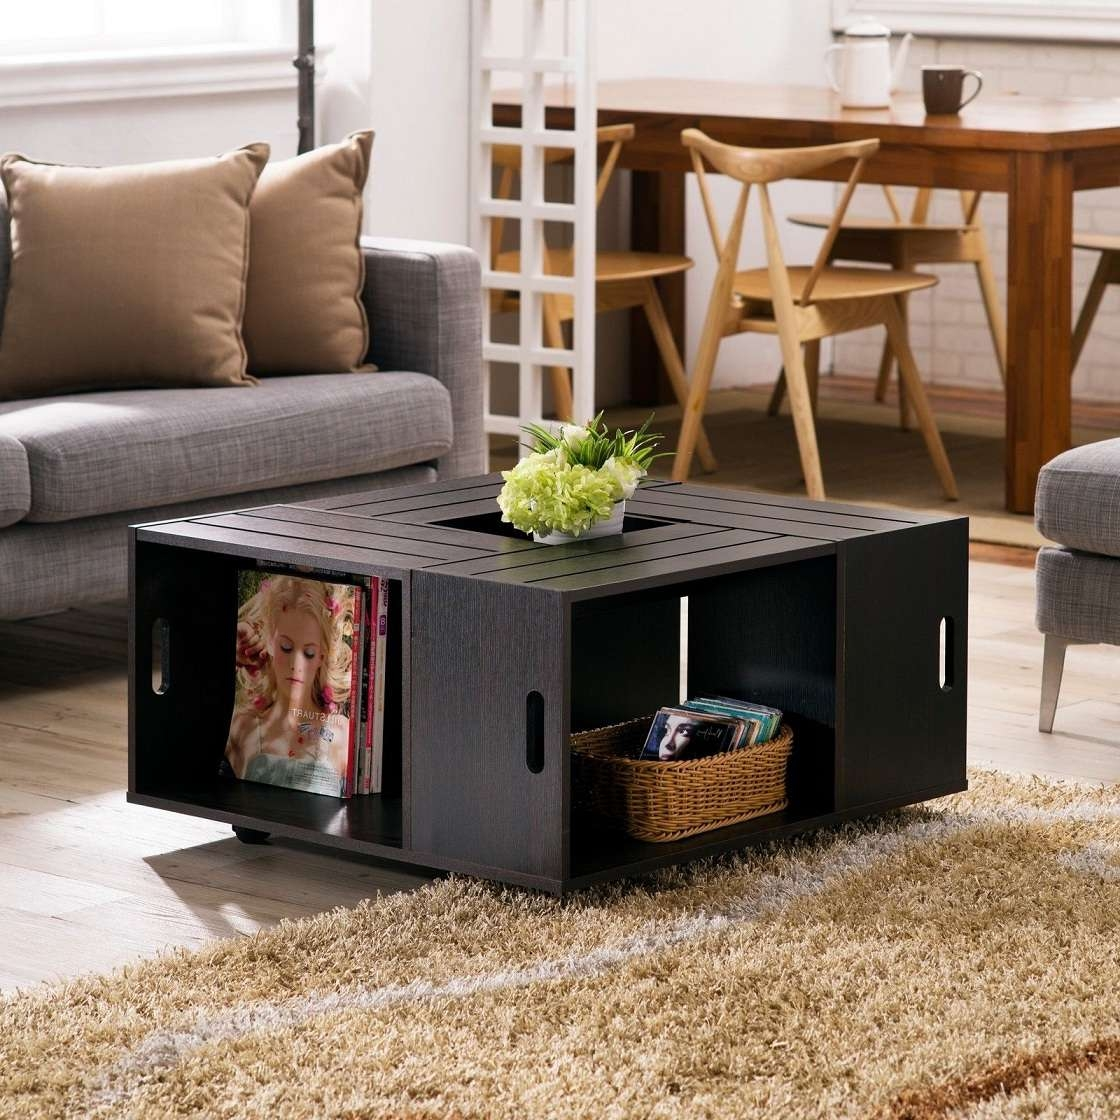 Most Recent Square Coffee Table With Storage Drawers Pertaining To Black Square Coffee Table With Drawers • Coffee Table Ideas (View 10 of 20)